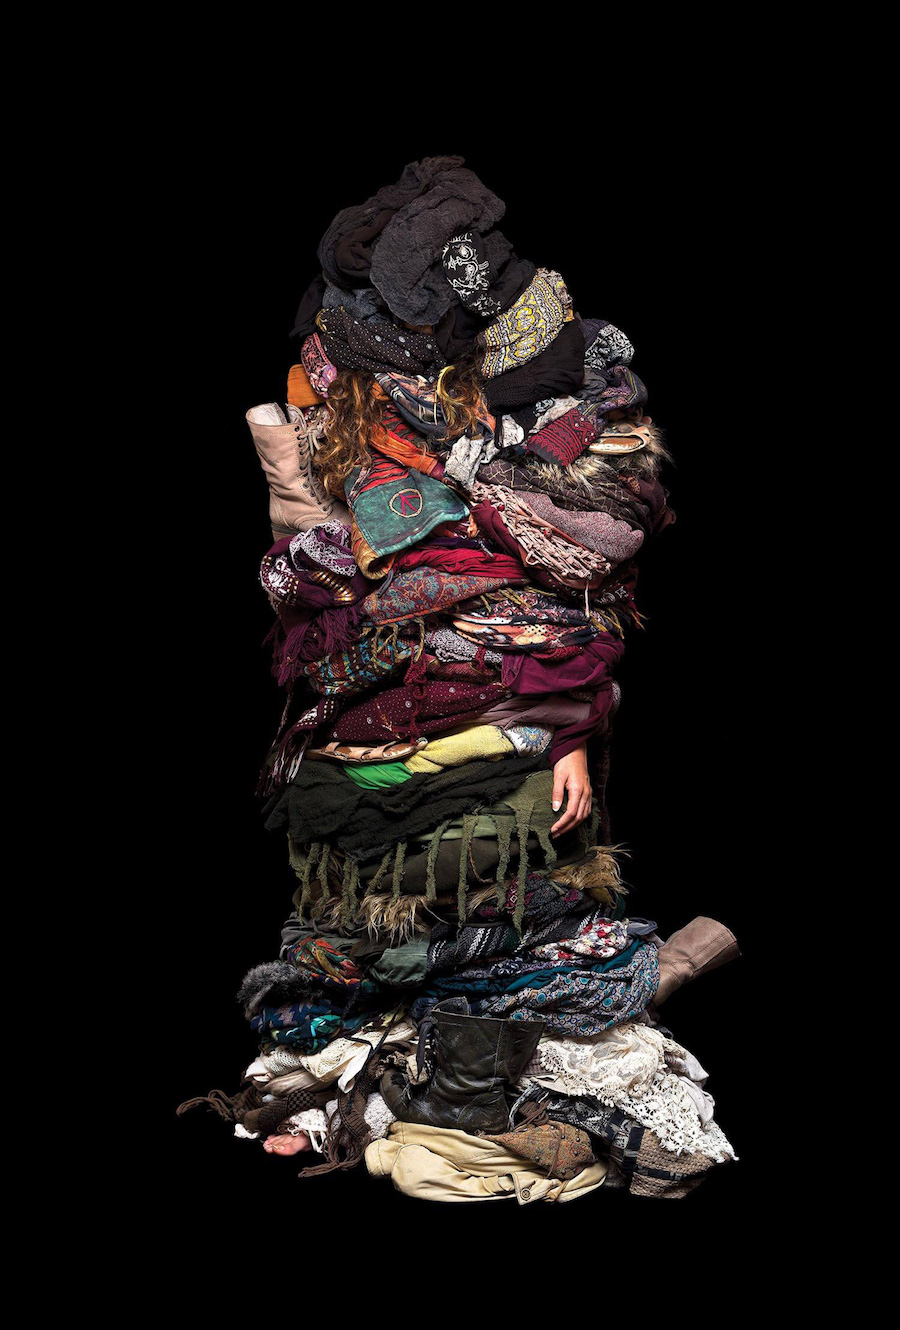 clothes clothing website mountains instagram Portrait t-shirt Accessories